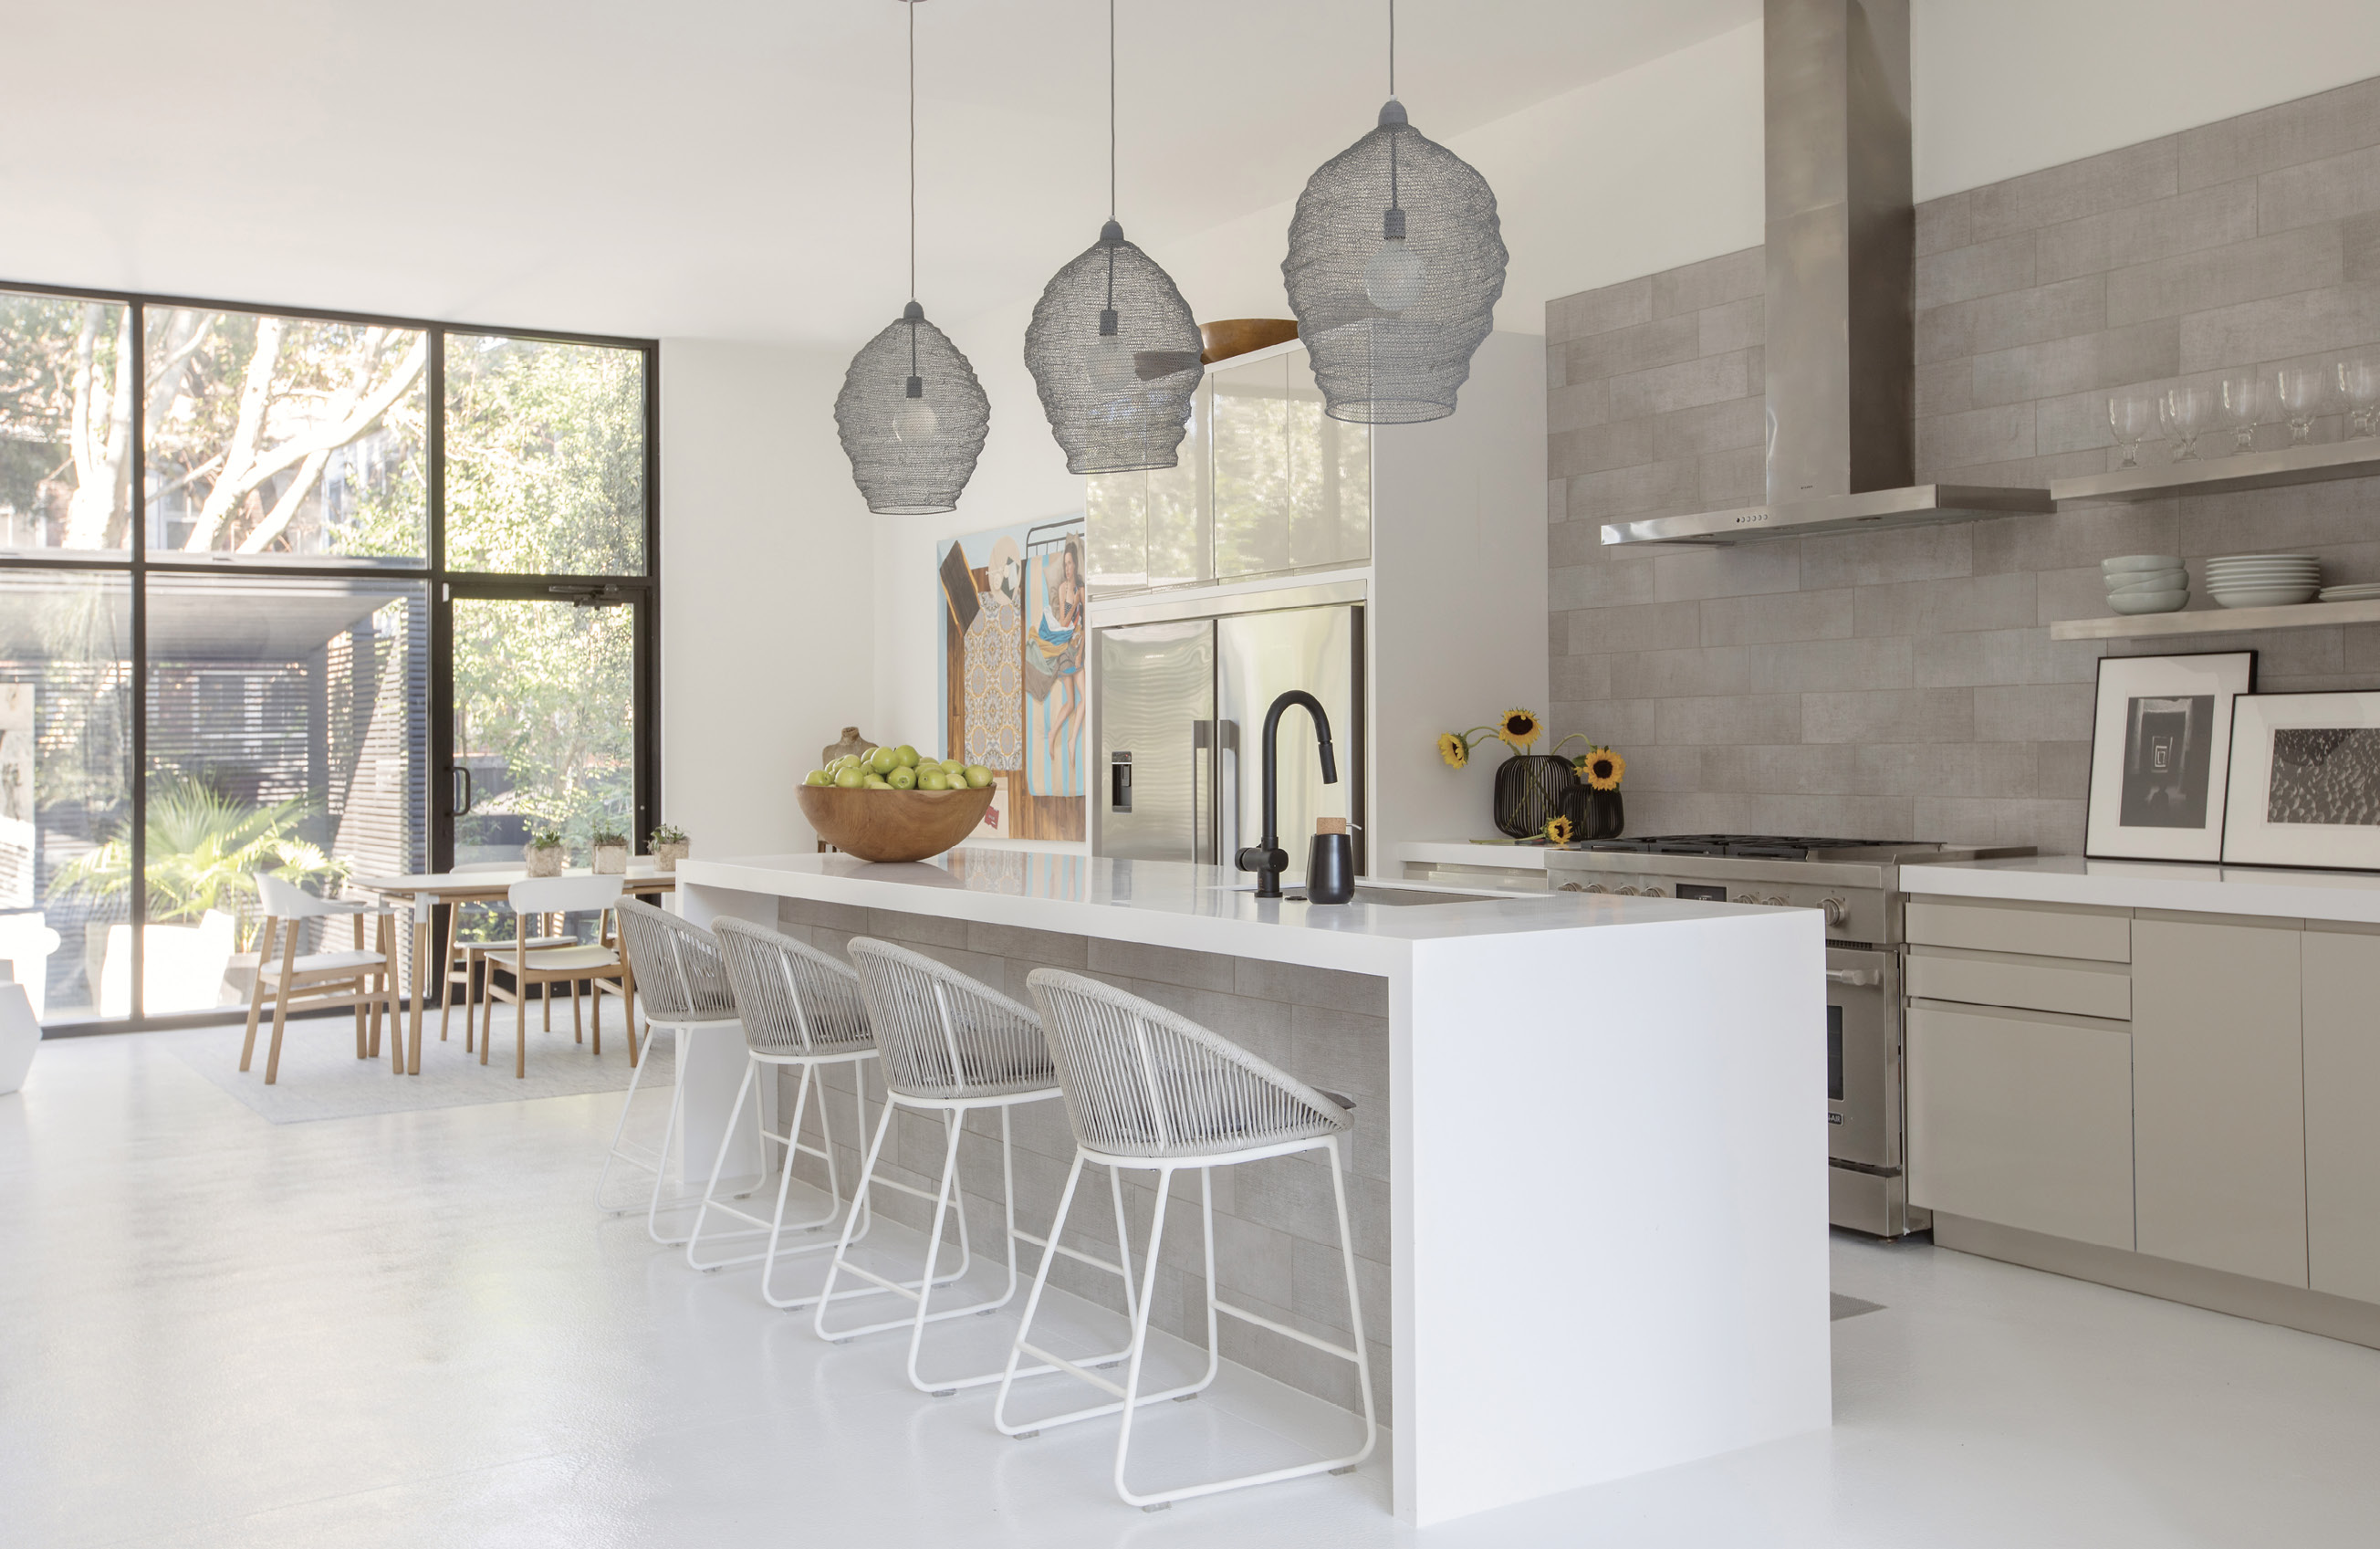 """WHITE SPACE: Mixing textures in white, black, and beige, the kitchen is Baldwin's quiet space. """"With the black exterior and all white interior, I was drawn to a middle ground, and that manifested in a neutral-toned kitchen,"""" she says. """"It allows you to have that burst of color as an offset."""" Wire pendant lights from Denmark tie in to the industrial feel of the retail-style doors and windows; Teak Warehouse stools complete the look."""